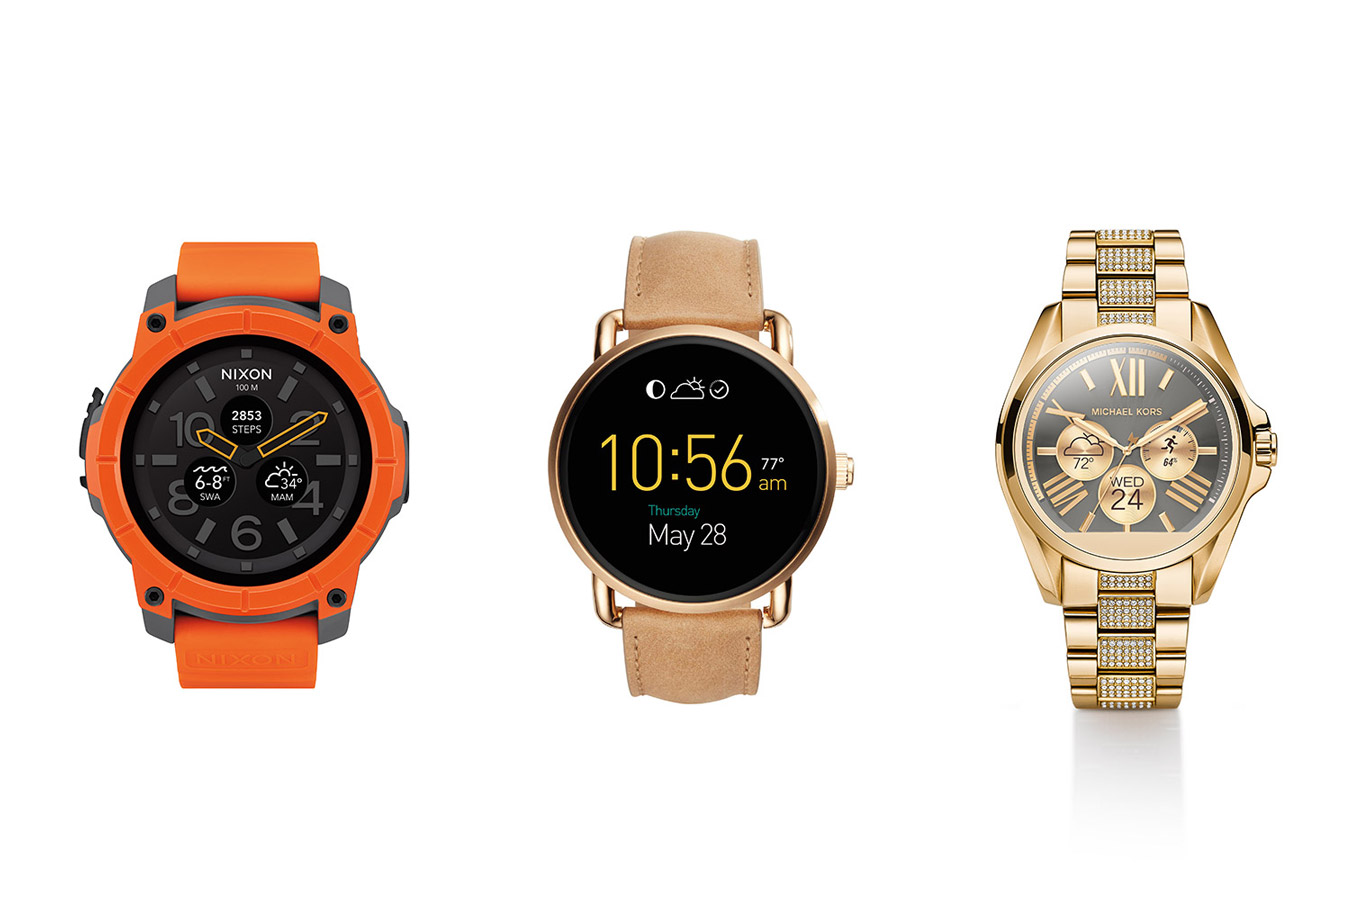 Michael Kors, Fossil and Nixon Android Wear watches ...